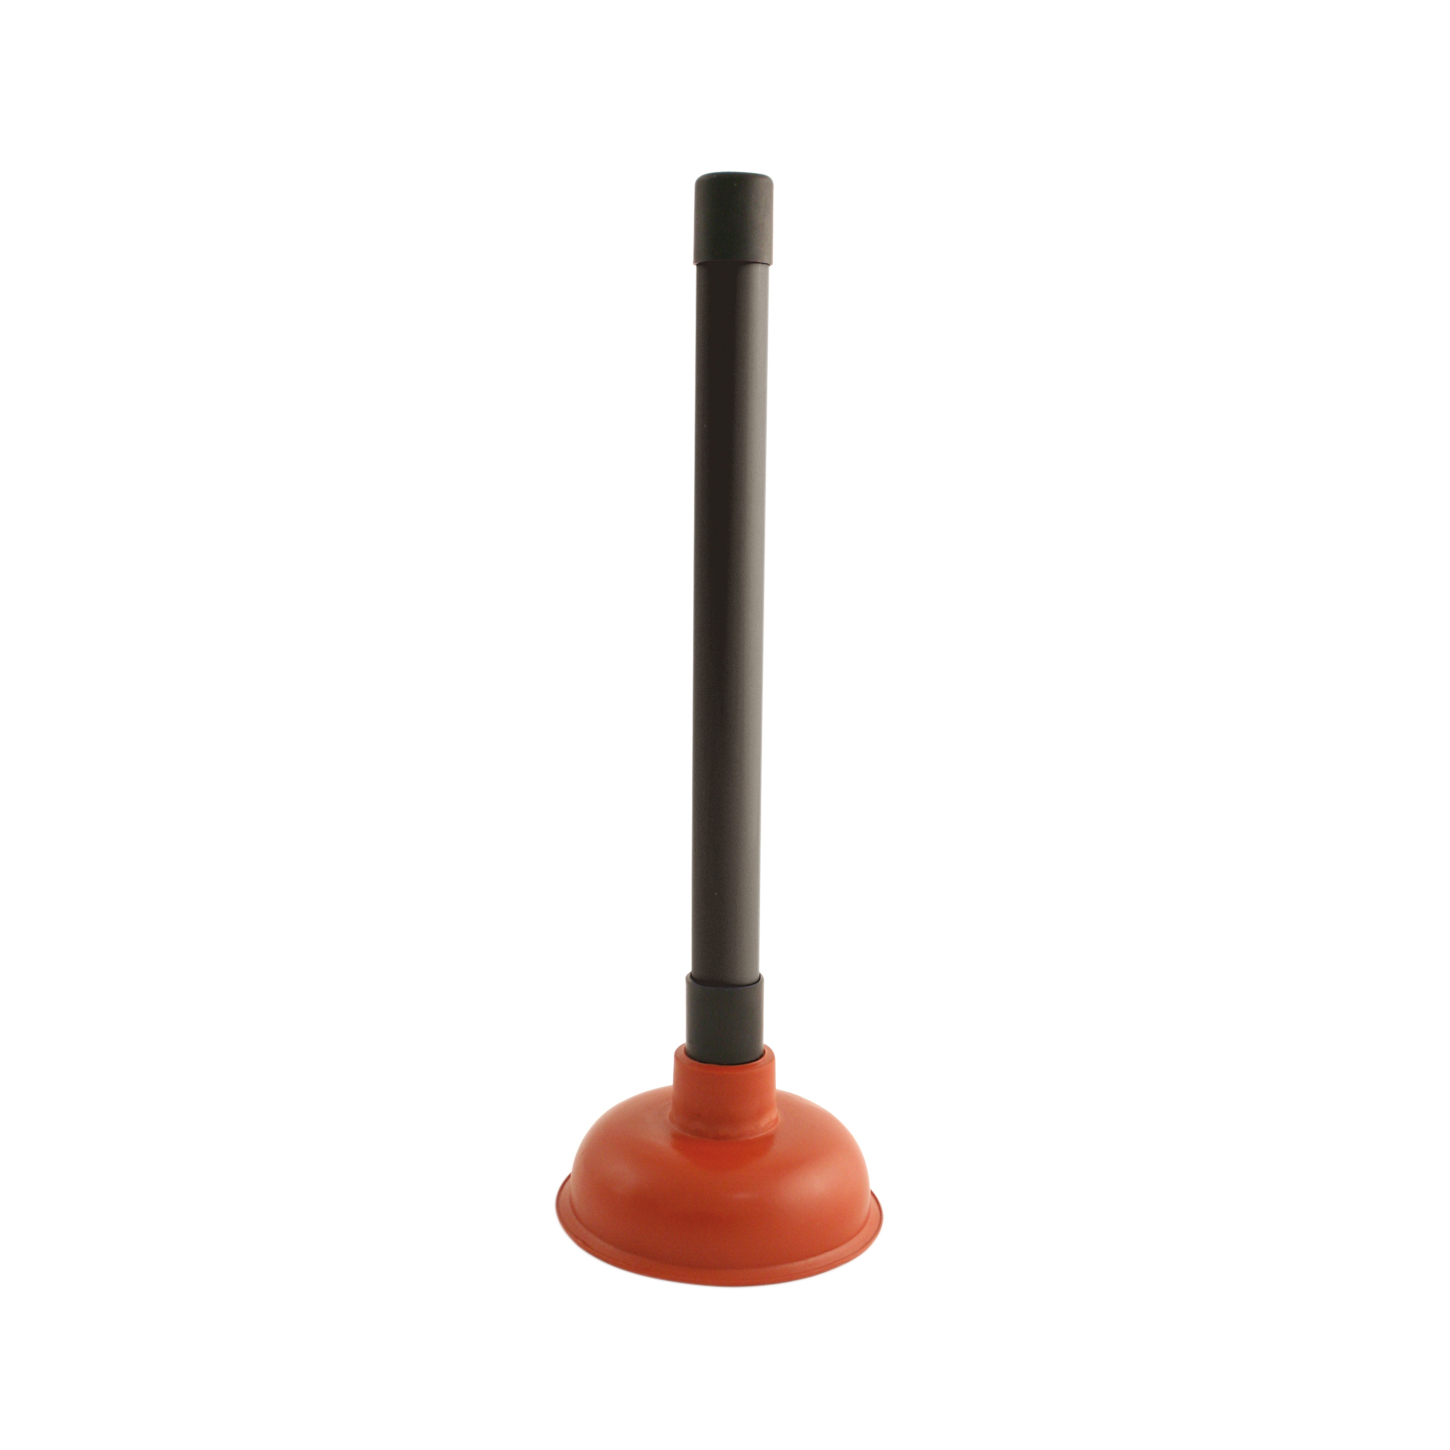 Cleaning Equipment Sink Plunger 4 Inch